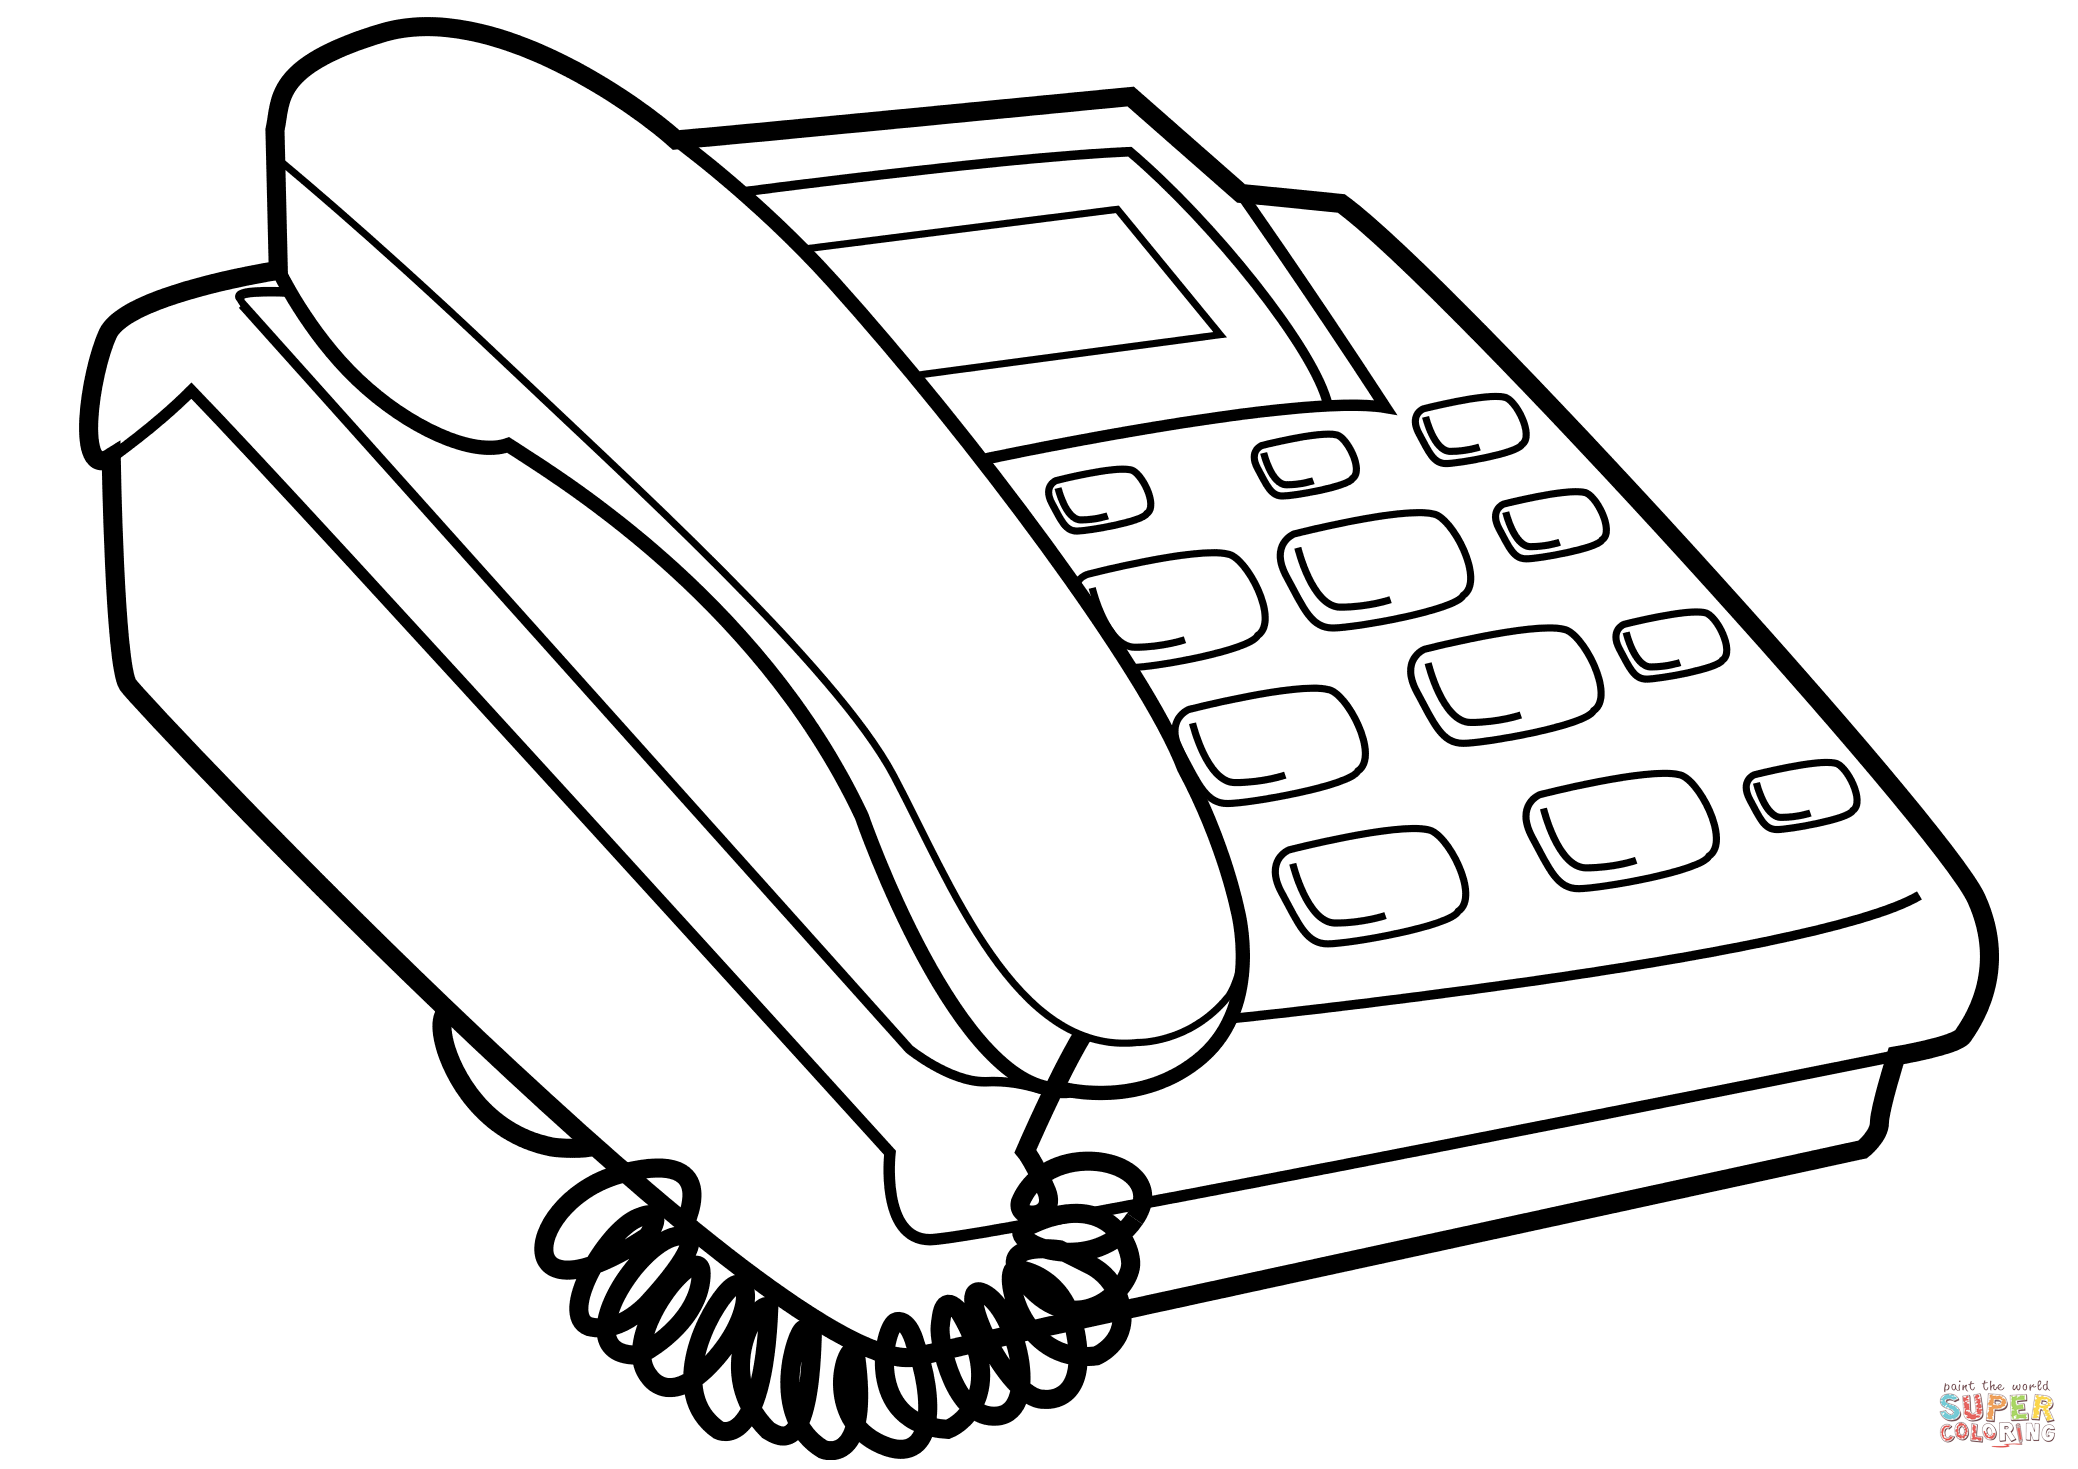 Push Button Telephone Coloring Page